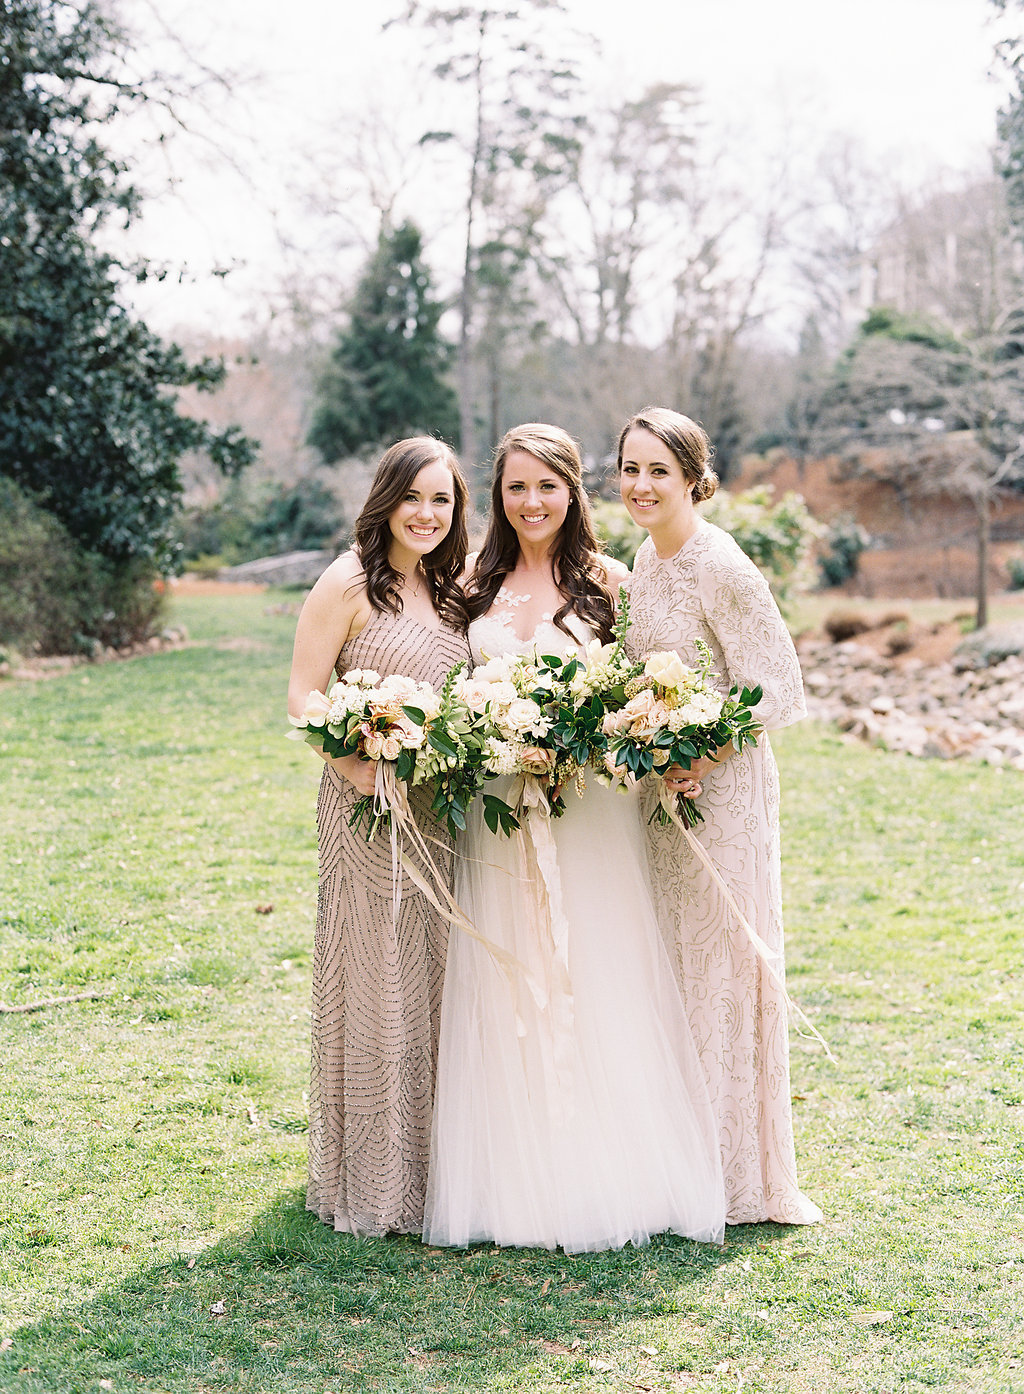 greenville-south-carolina-wedding-event-planner-jessica-rourke-287